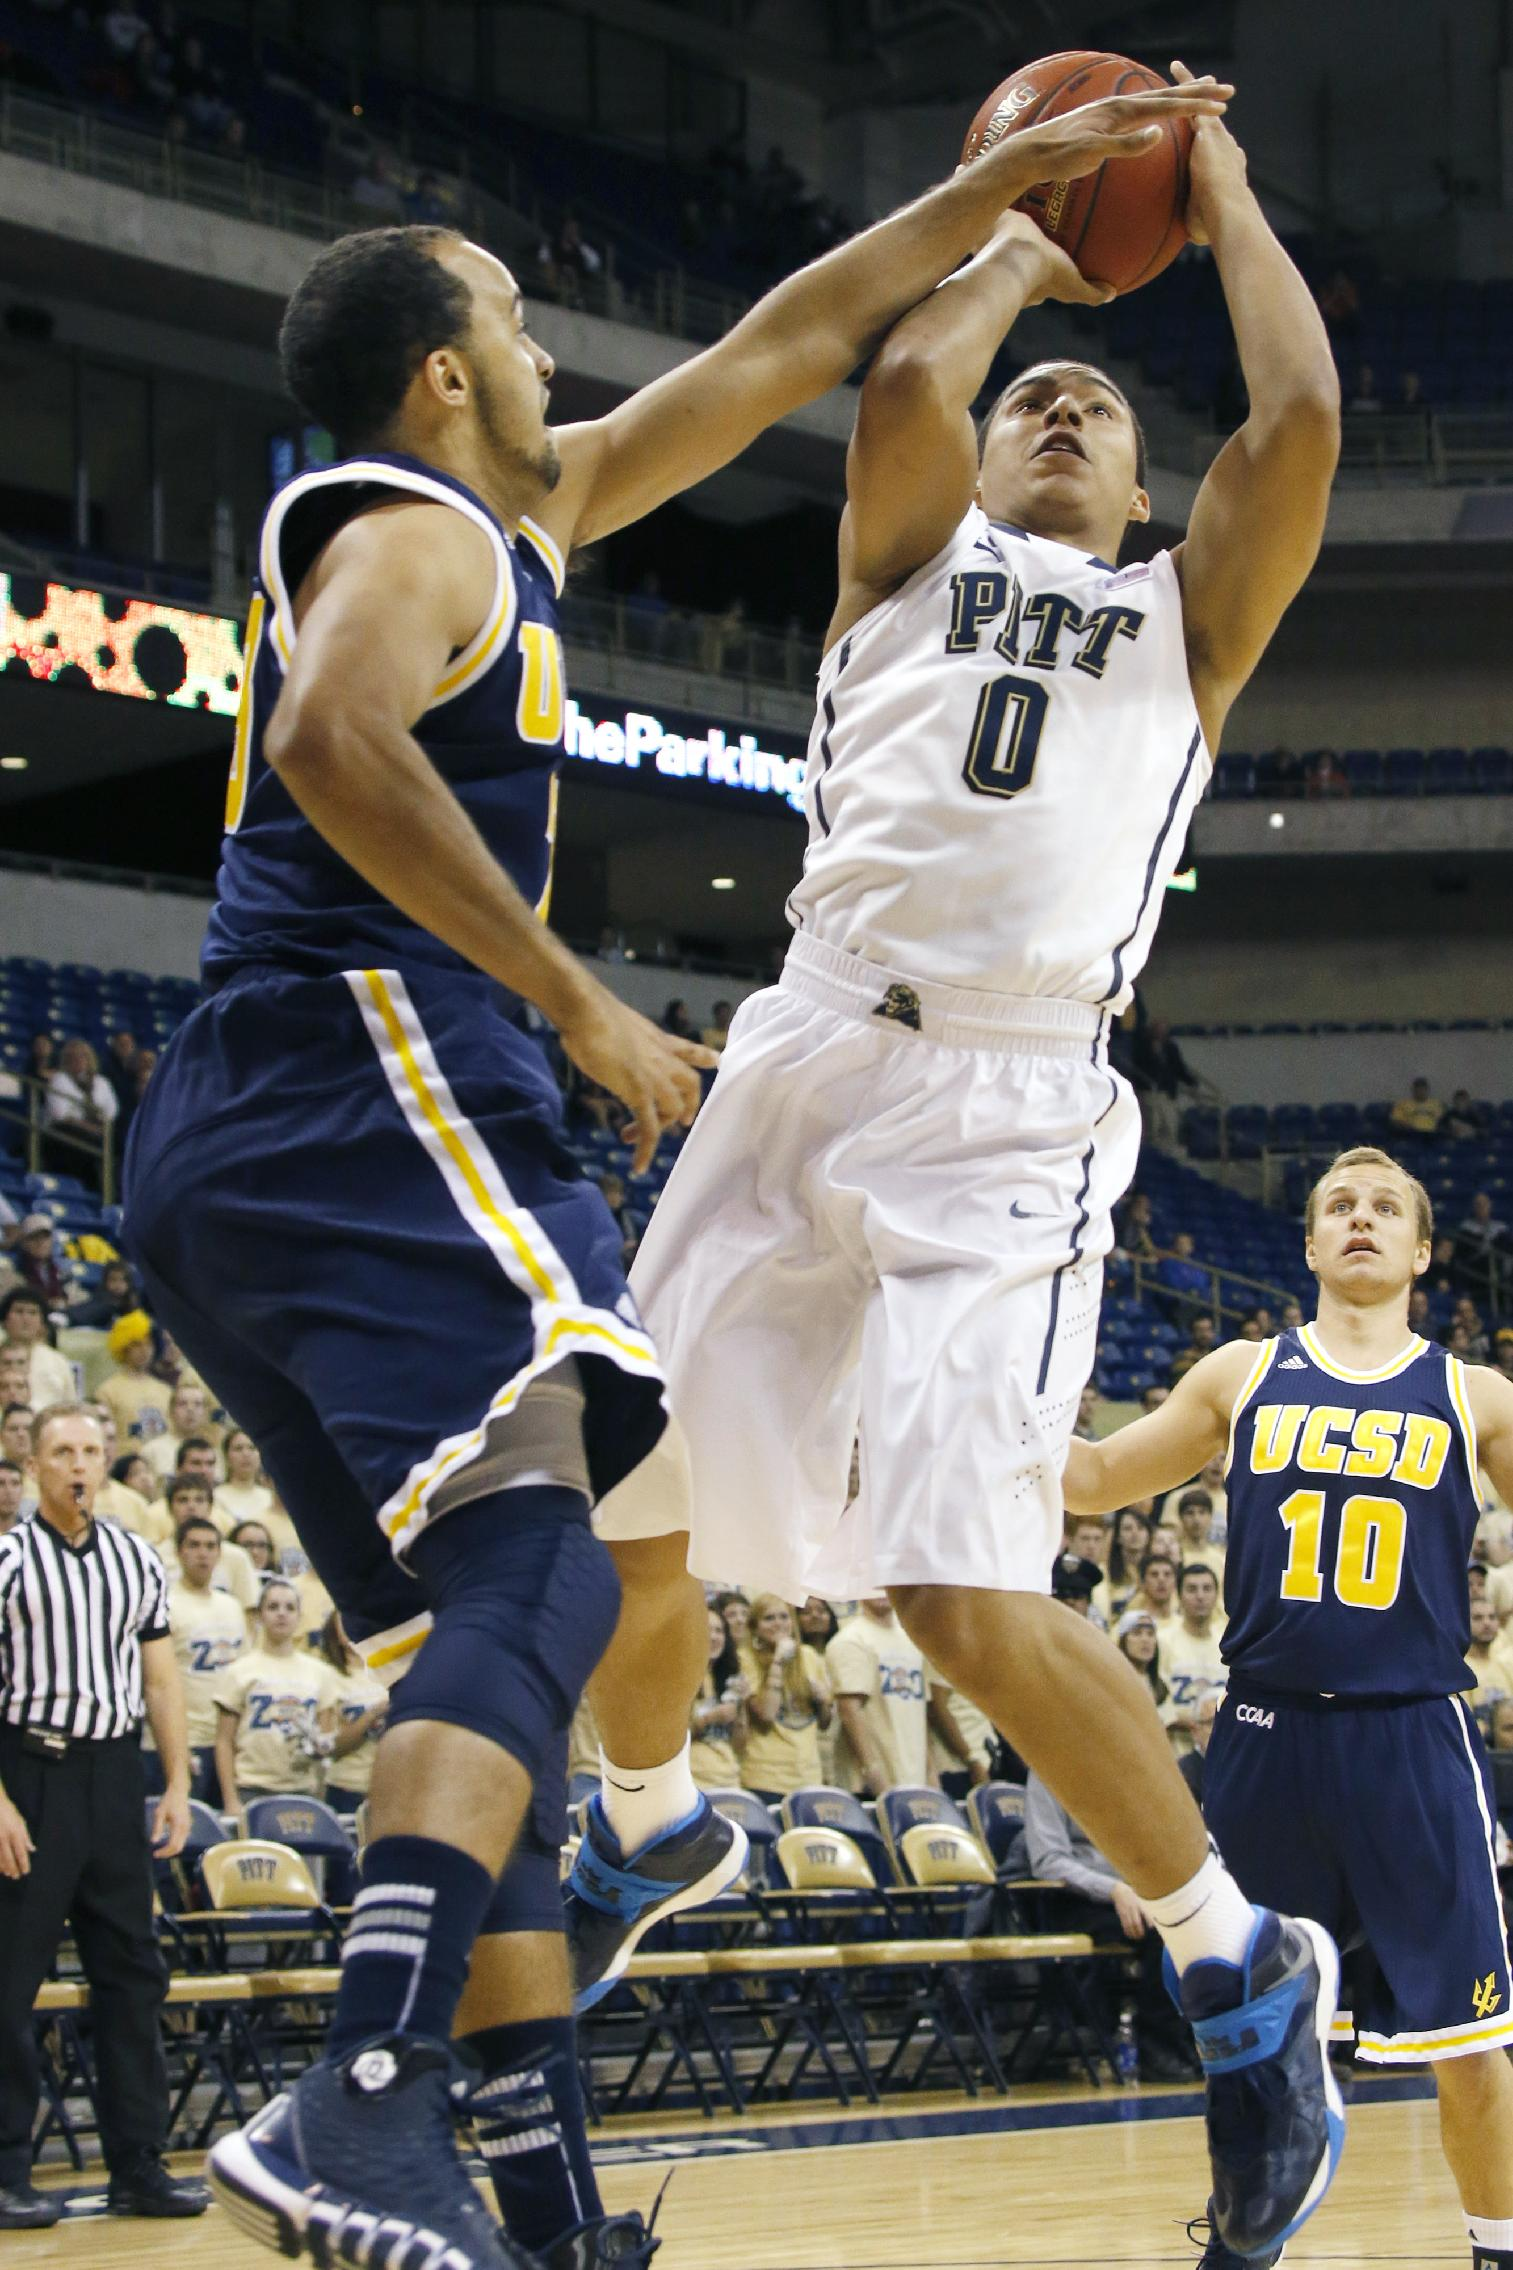 Pittsburgh's James Robinson (0) shoots over UC San Diego's Hunter Walker in the first half of an exhibition NCAA college basketball game on Friday, Oct. 25, 2013, in Pittsburgh